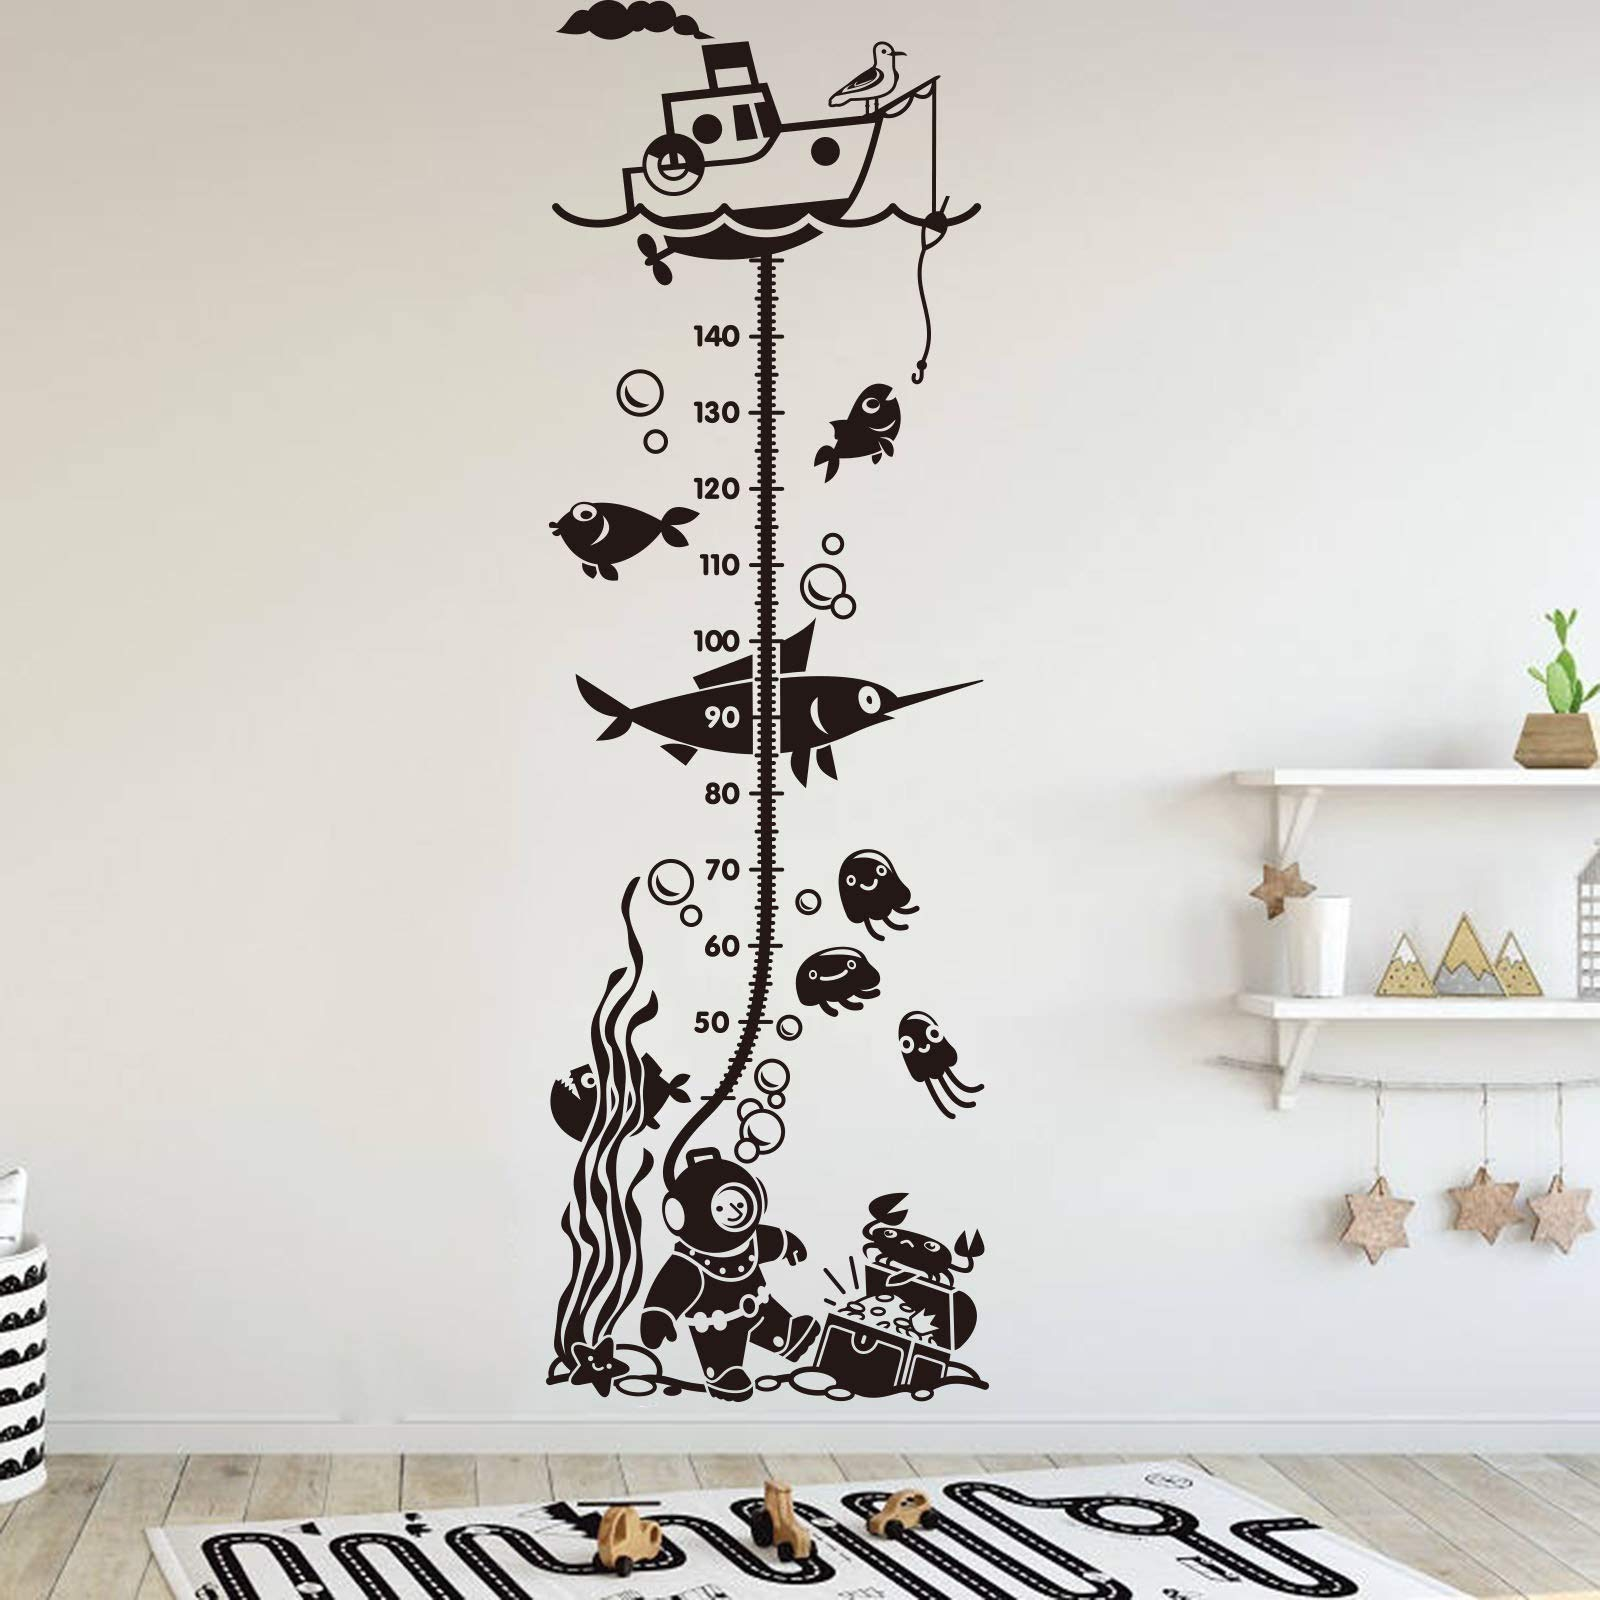 Height Growth Chart Under Sea Wall Decal Measure Ruler Decal Height Growth Chart Fish Dive Wall Sticker Art Vinyl Kids Room Children Room Made in USA by AmericanVinyl